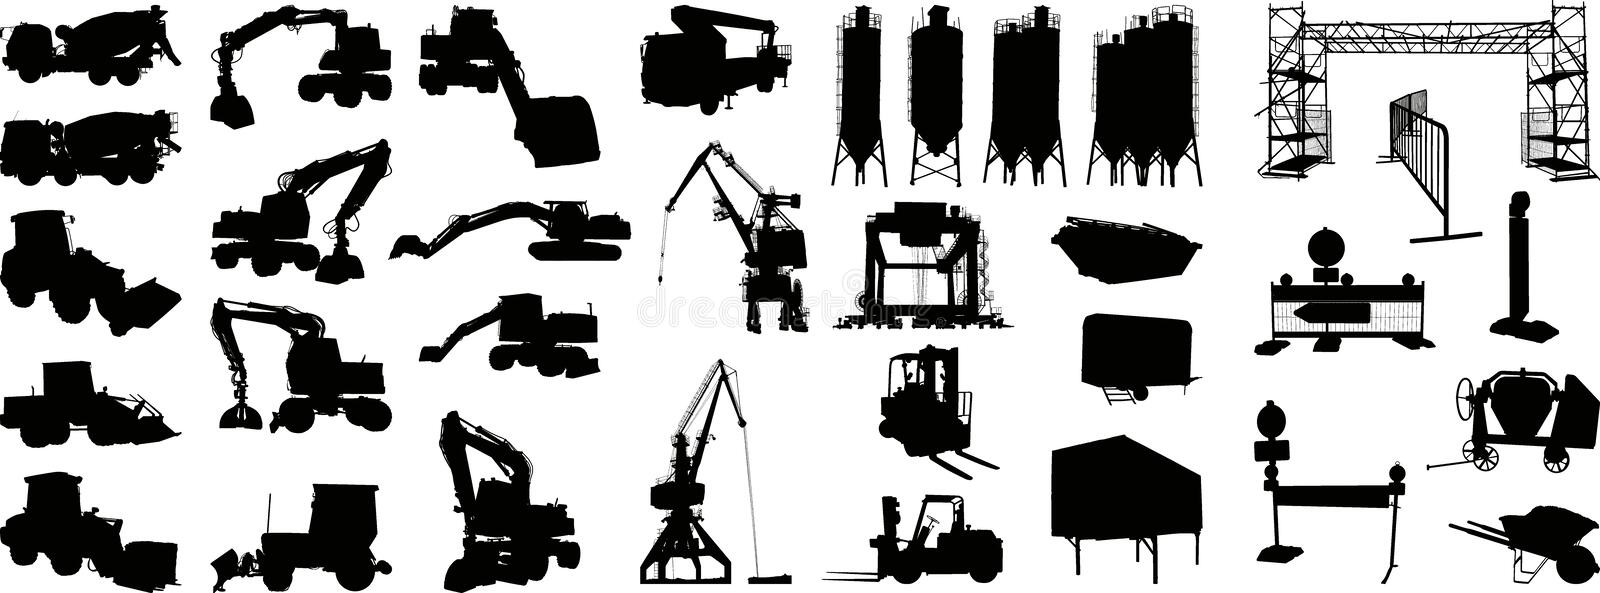 Building site silhouette 1 (+ vector) stock illustration